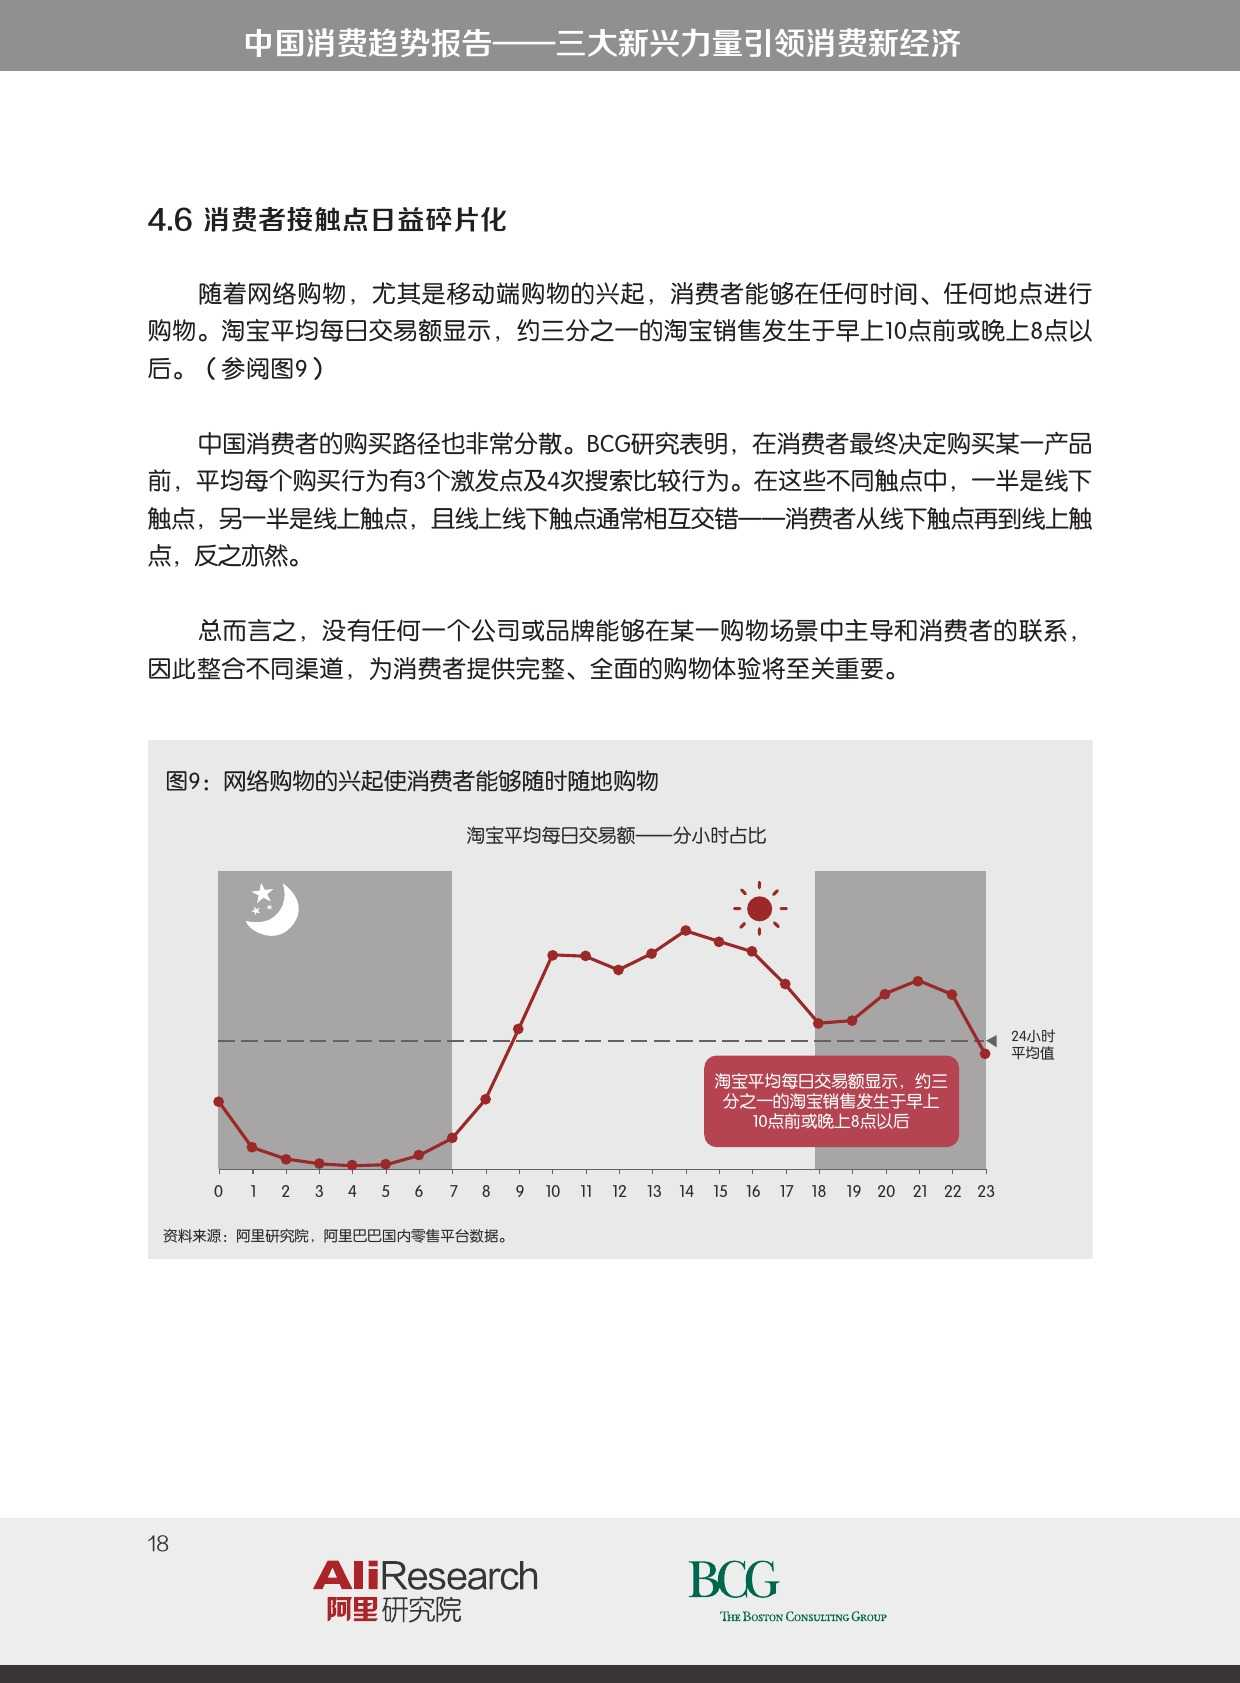 BCG_The_New_China_Playbook_Dec_2015_CHN_000018